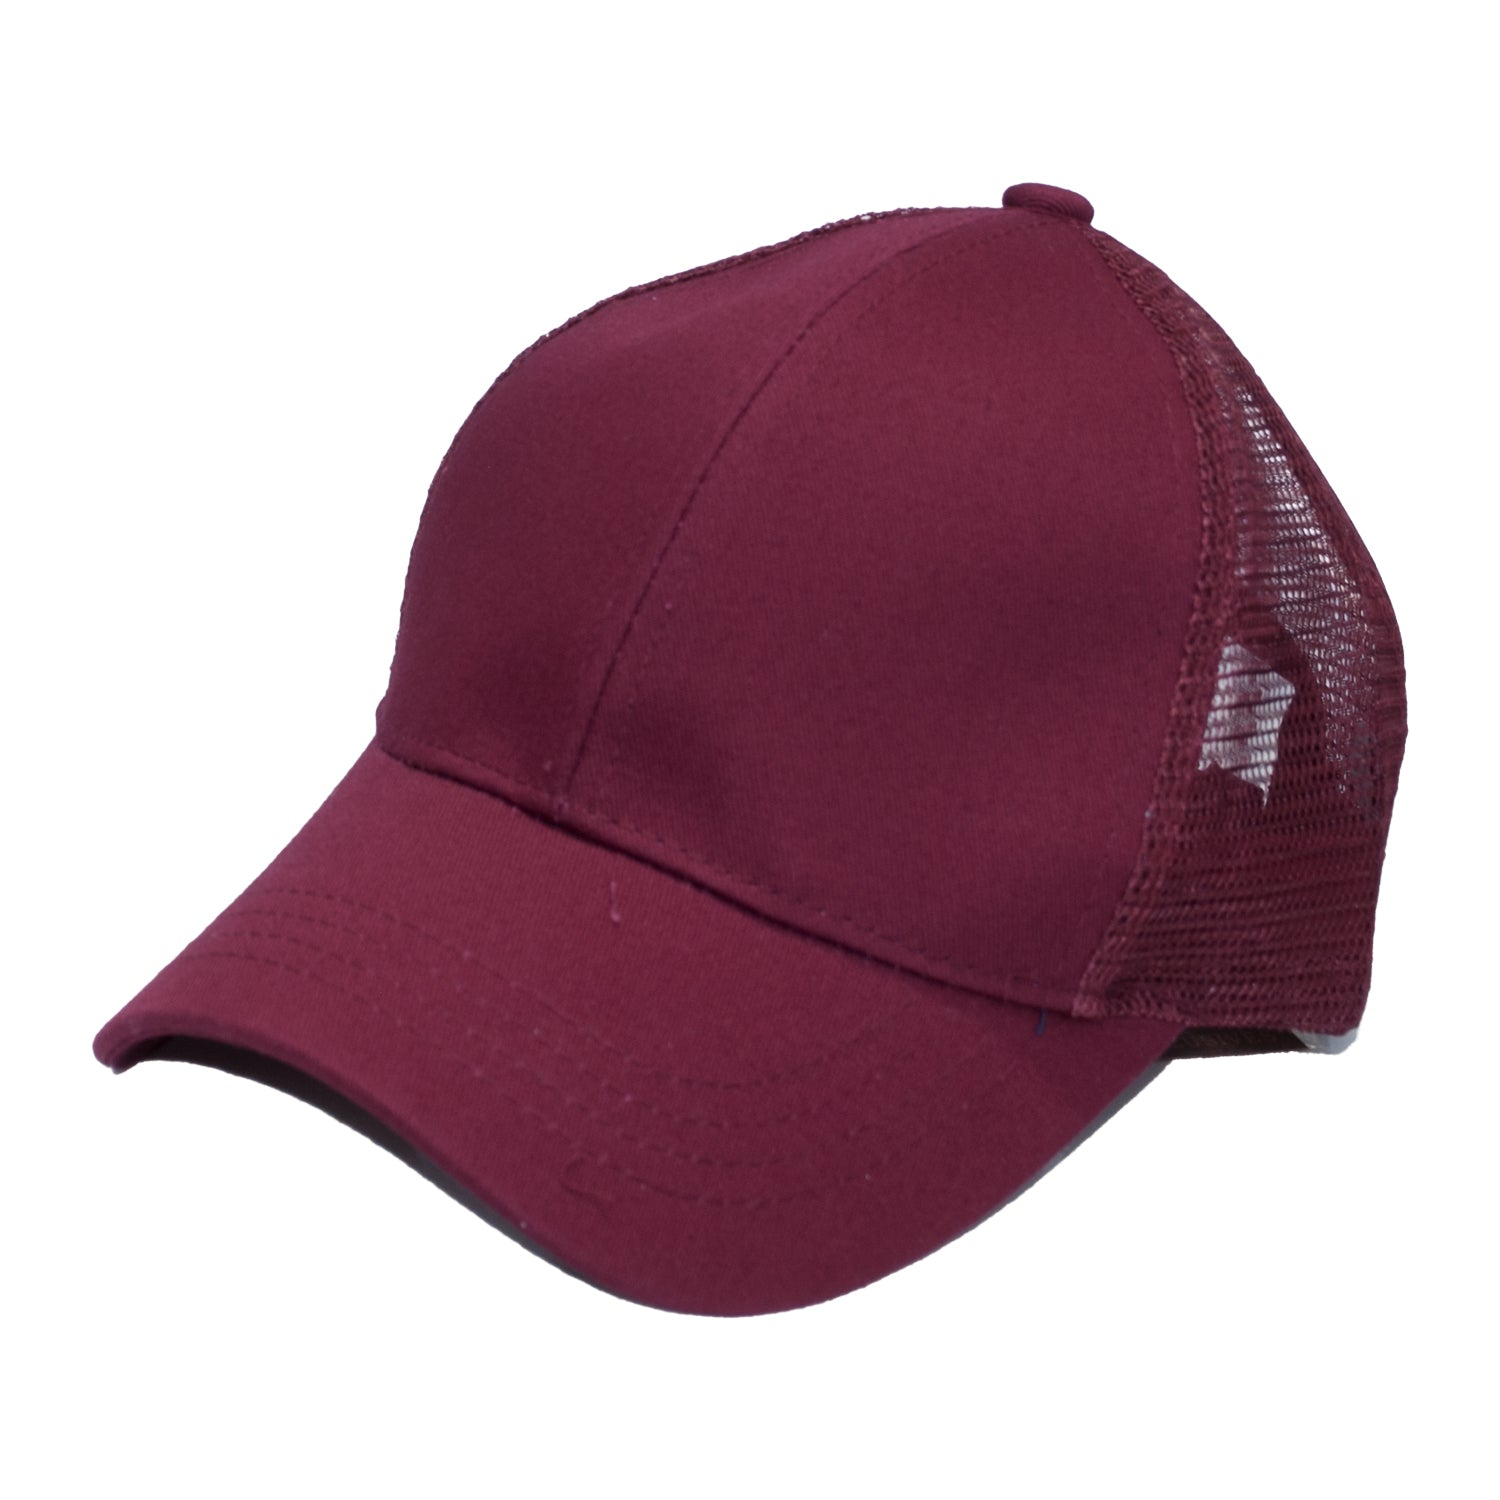 B-4 C.C Pony Caps Burgundy